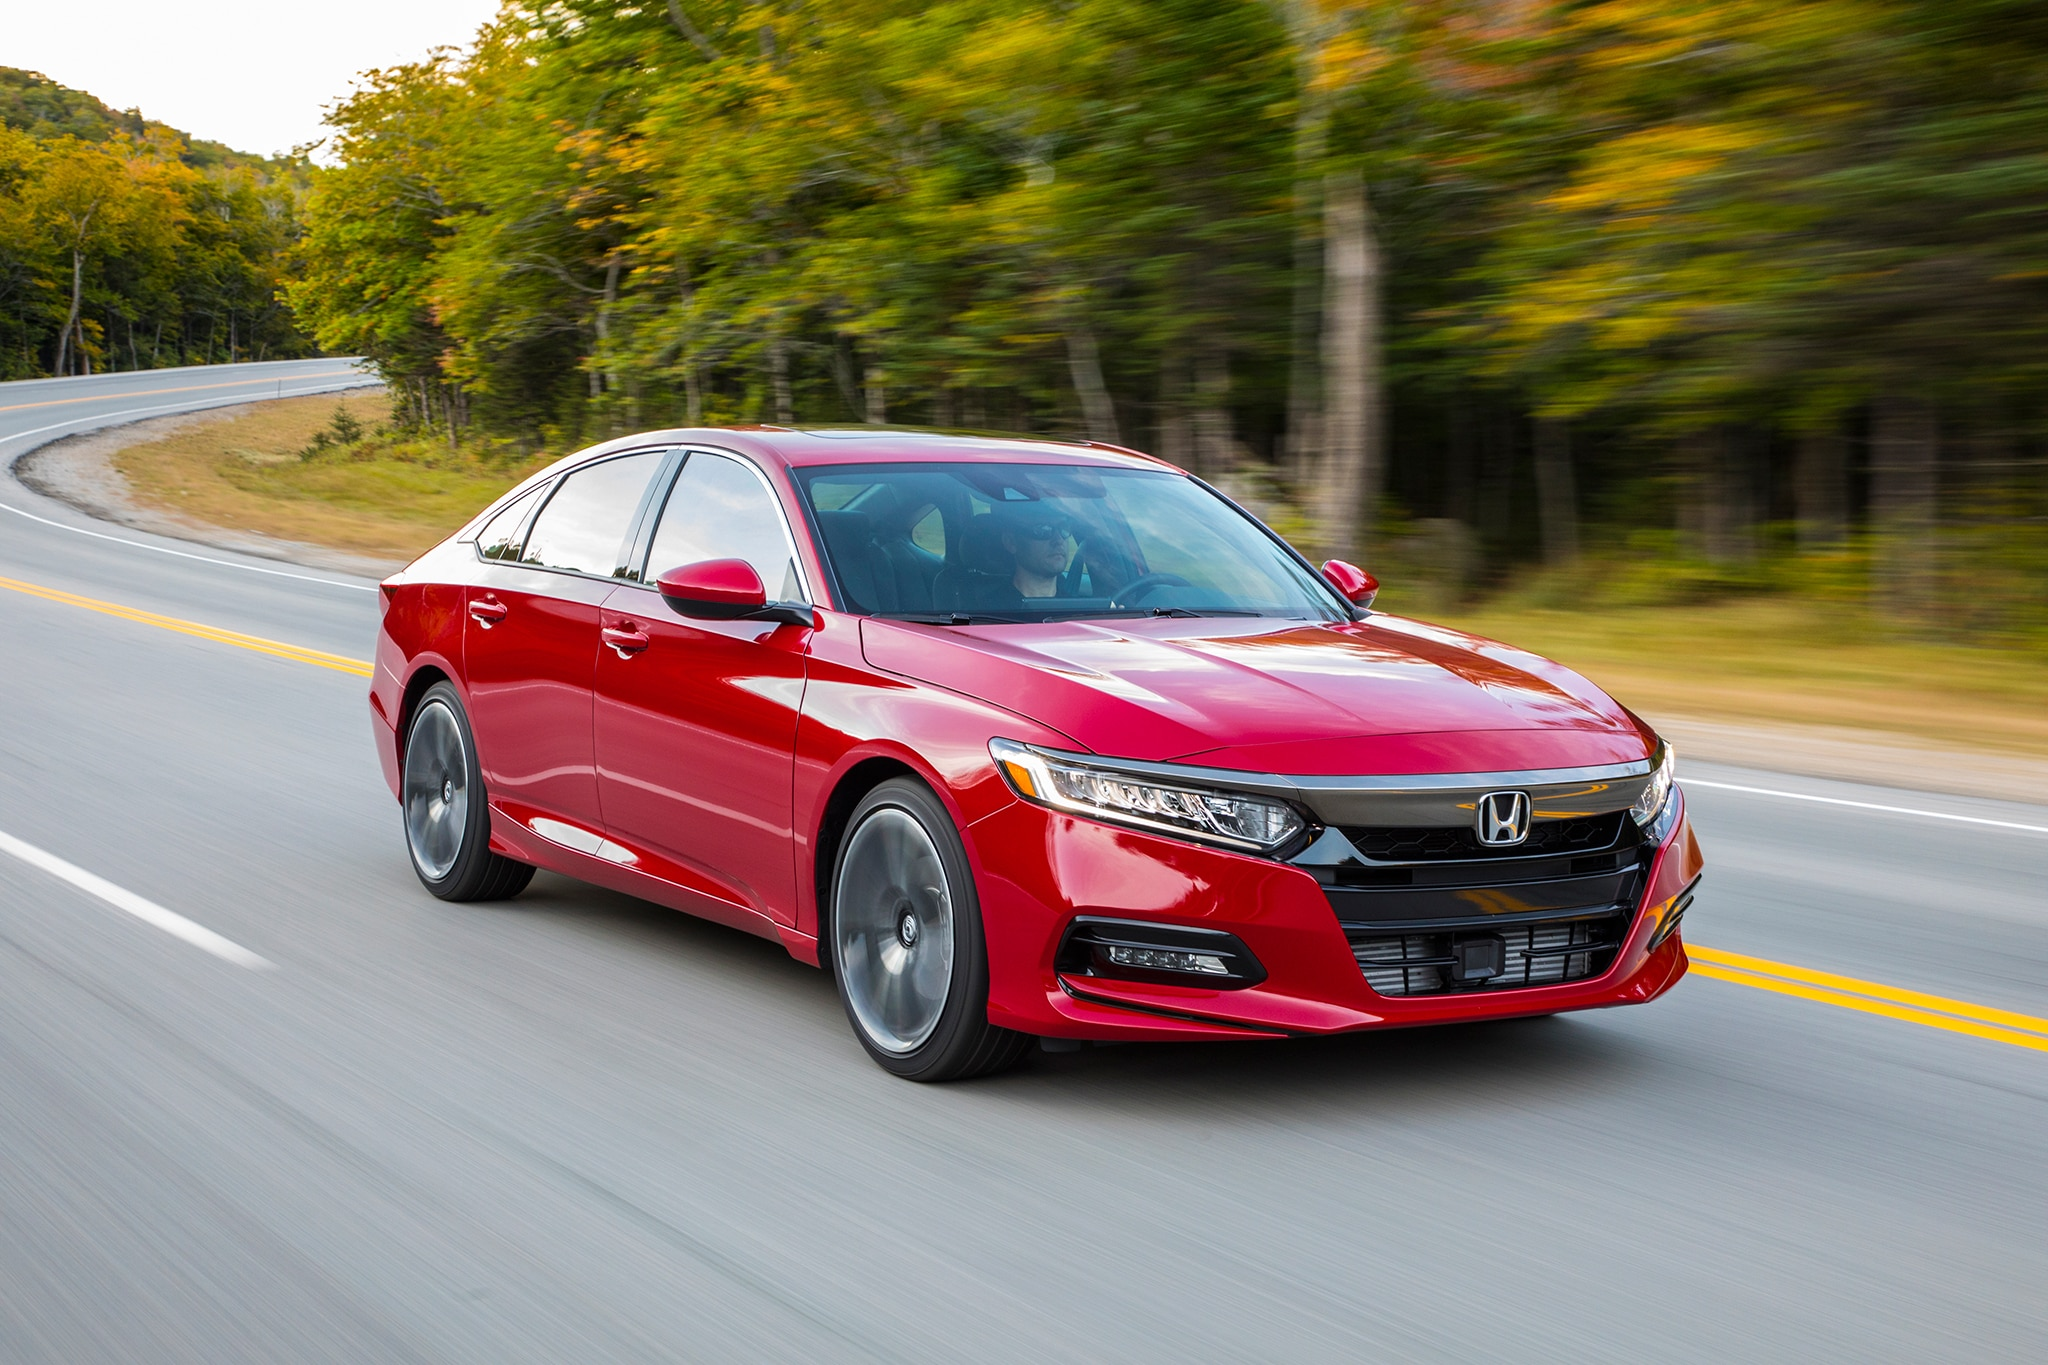 2018 Honda Accord 2 0T Sport Front Three Quarter In Motion 02